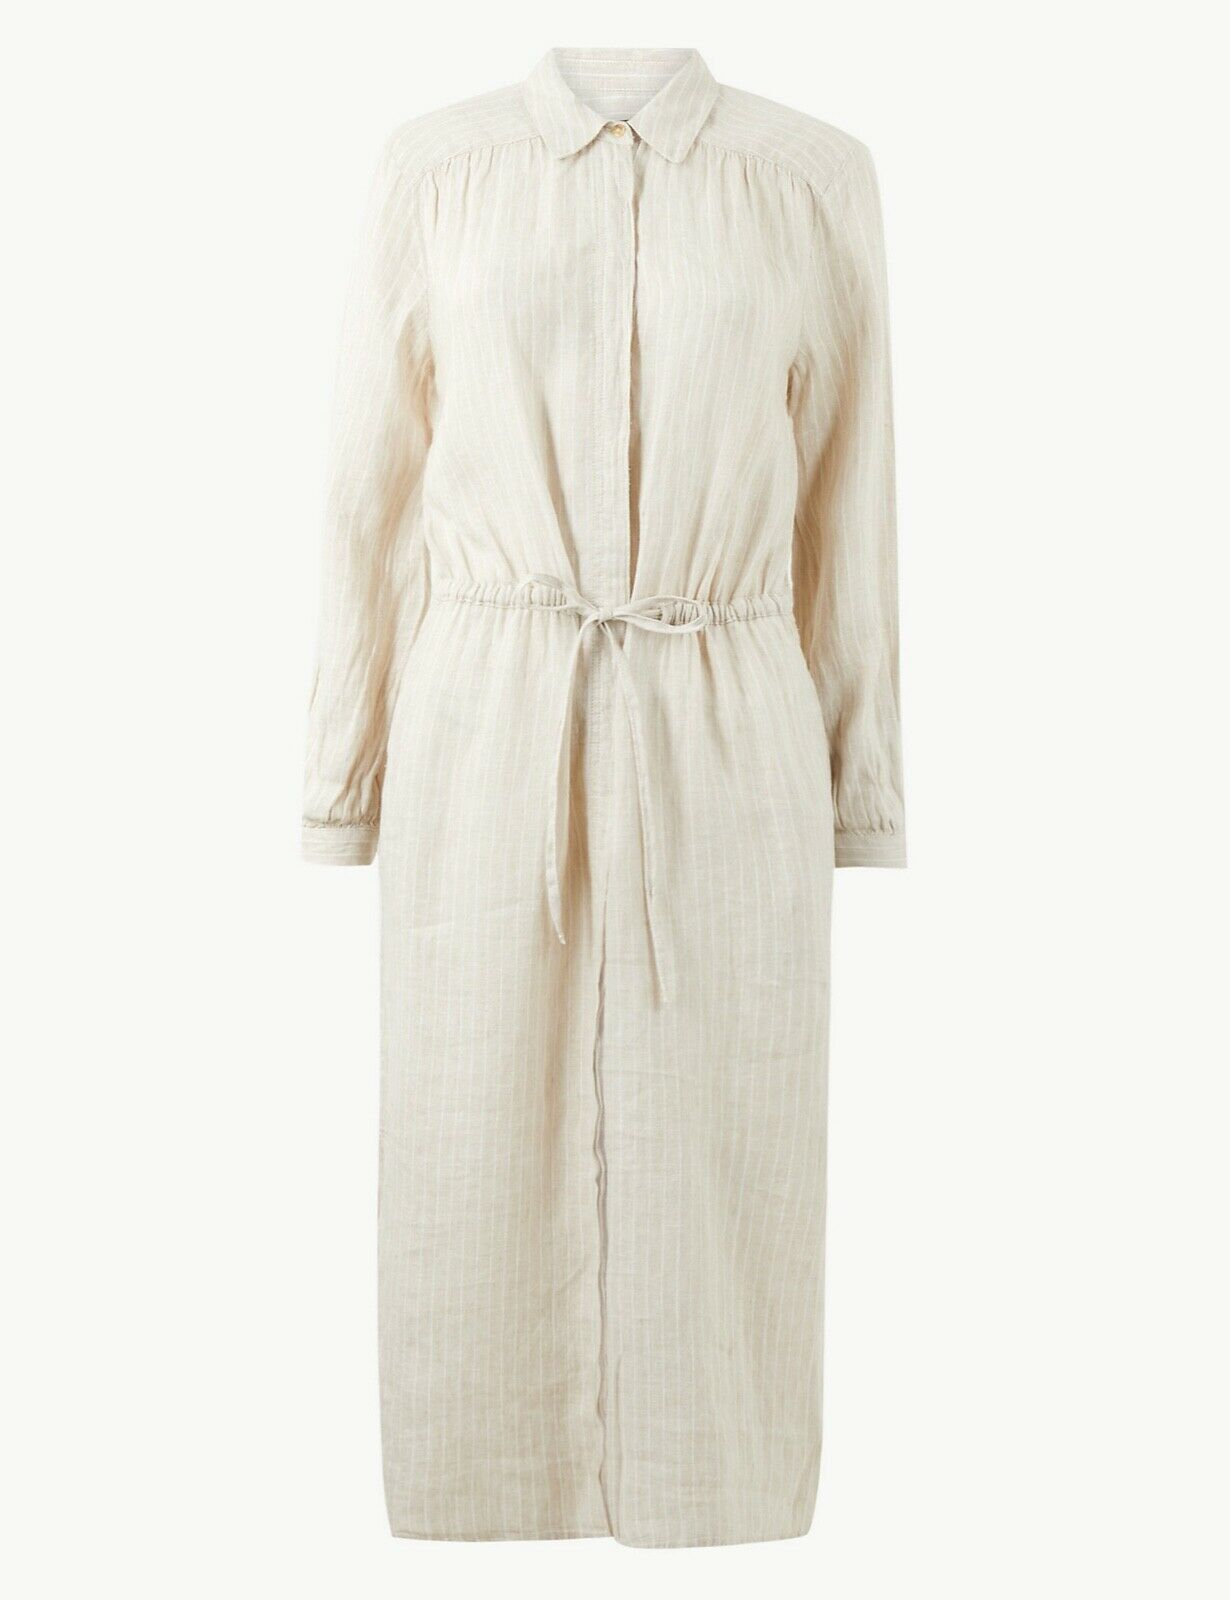 Marks & Spencer Pure LINEN DRESS Size 14 NEW Was £45